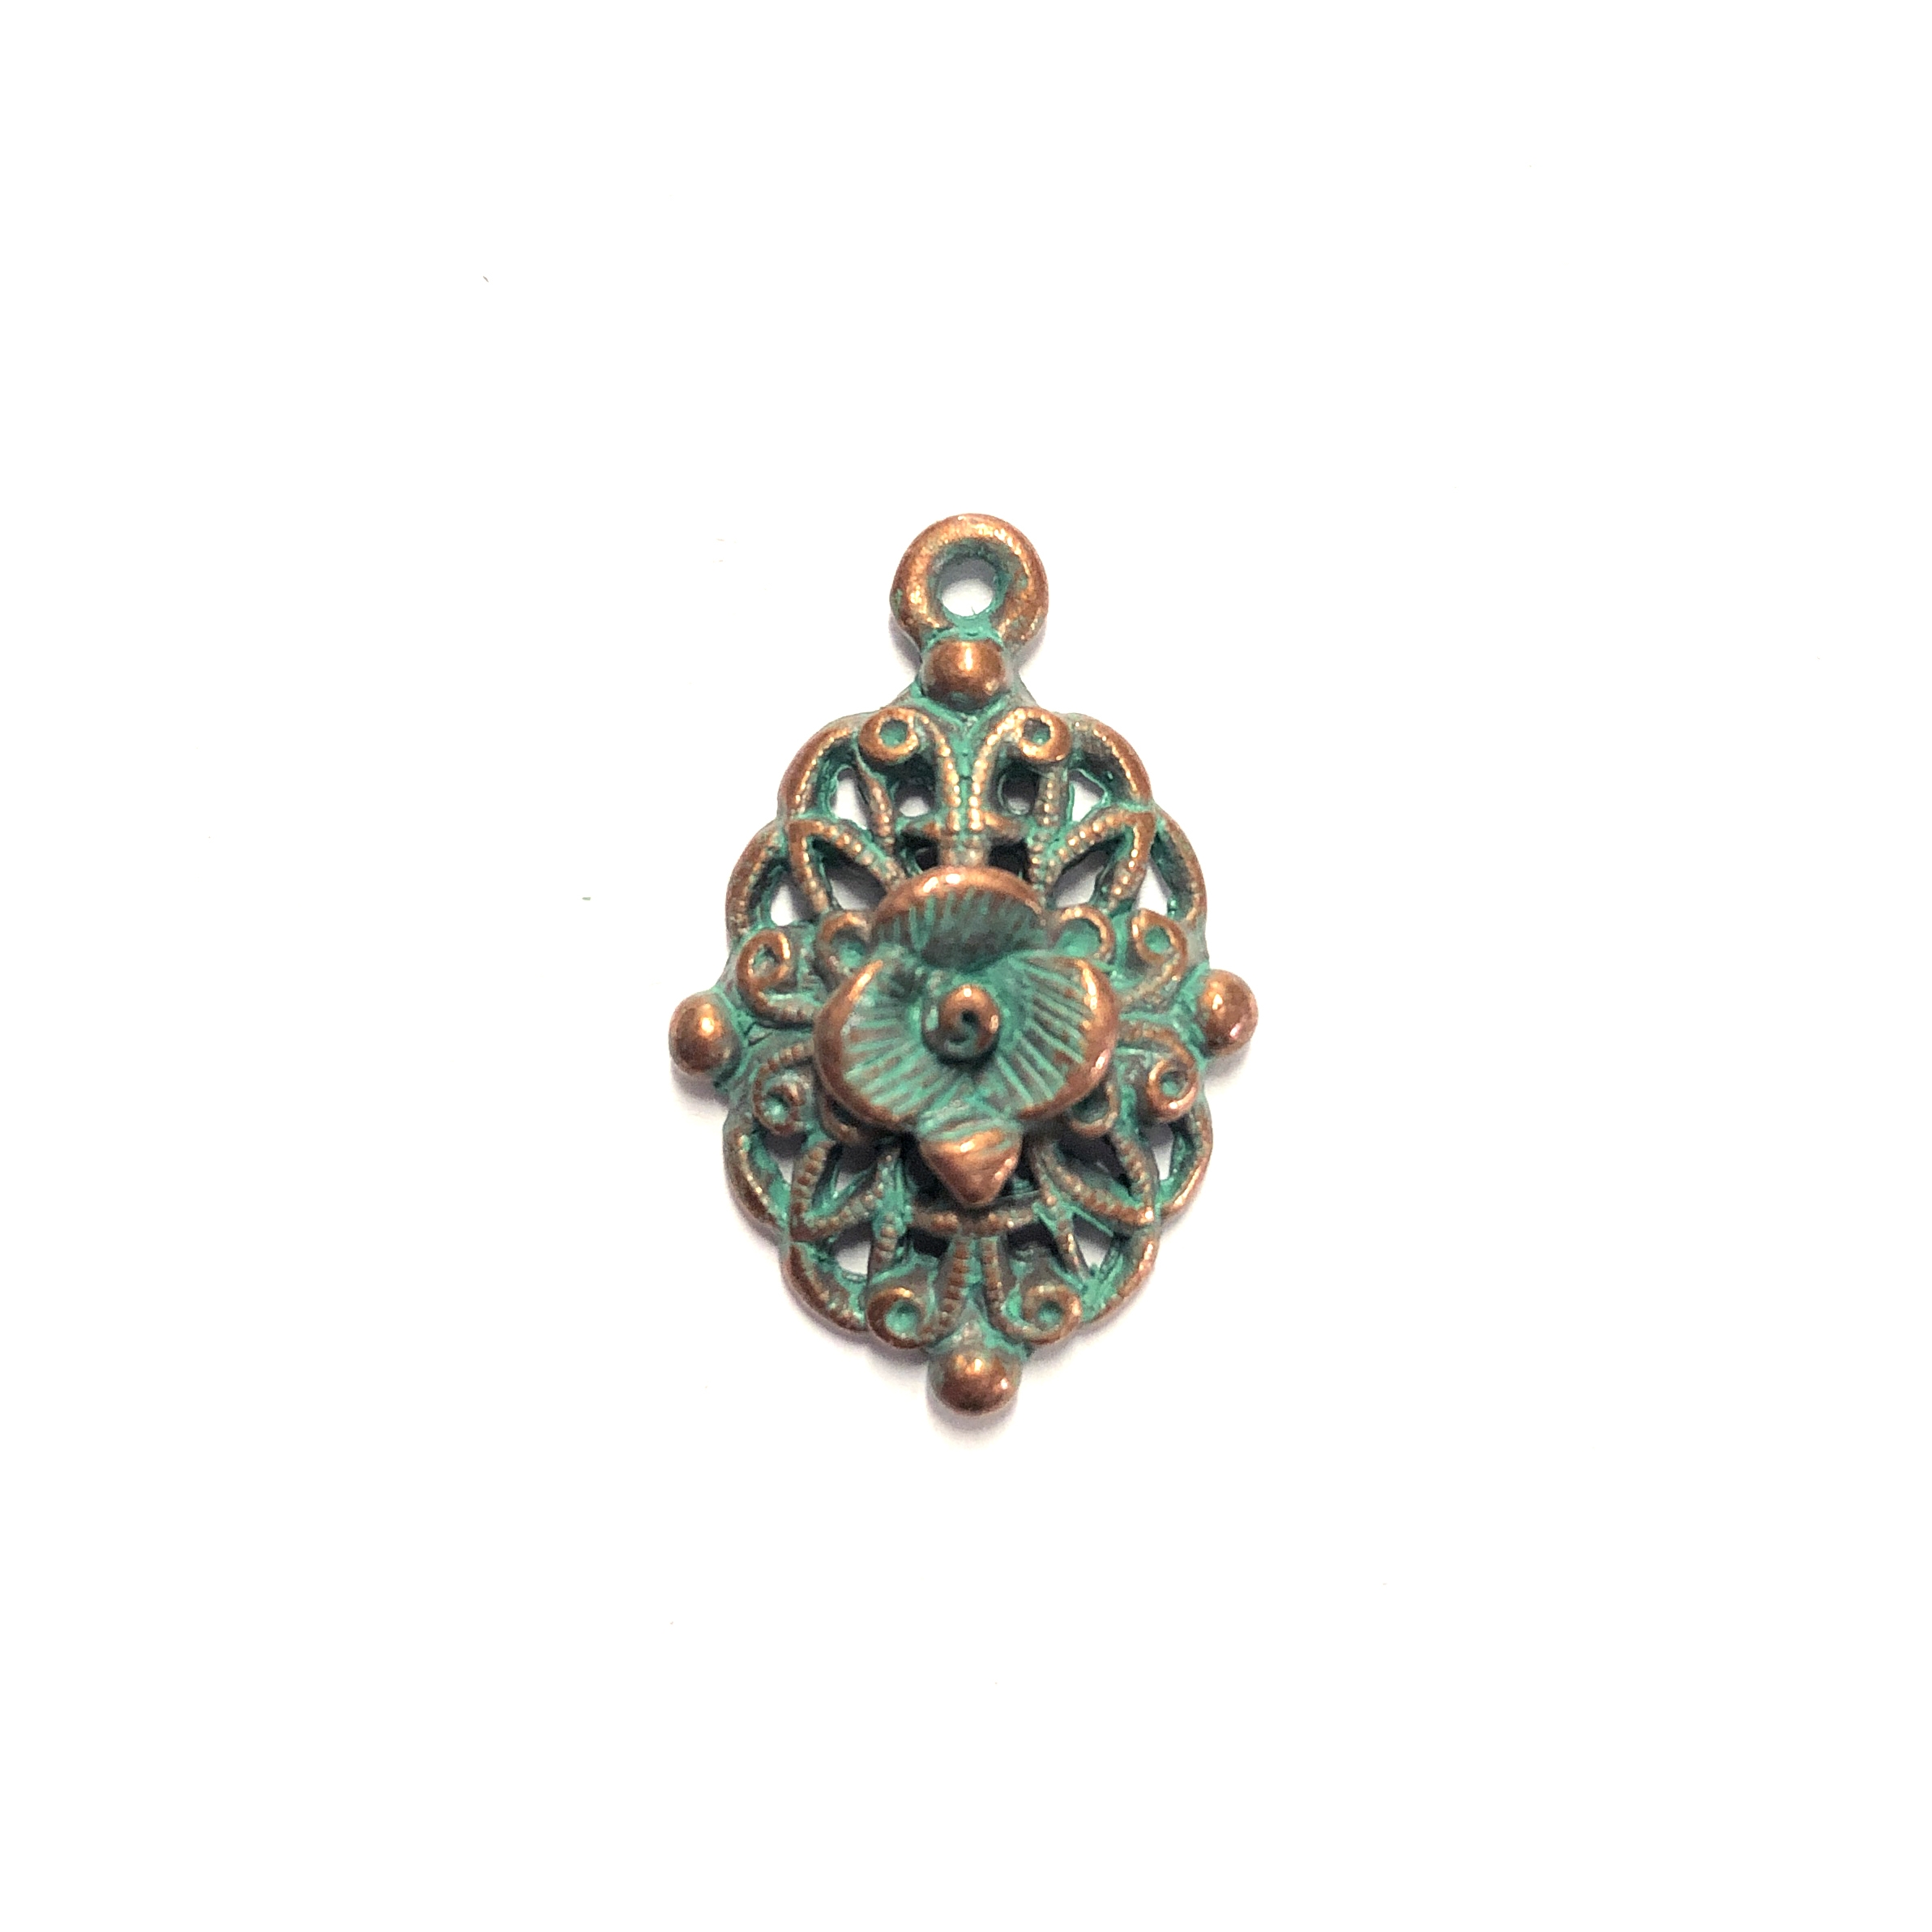 filigree flower charm, weathered copper, lead free, pewter castings, cast pewter jewelry parts, vintage, 1928 Jewelry, B'sue Boutiques, B'sue by 1928, vintage charms, vintage jewelry findings, weathered green patina, us made, 0241